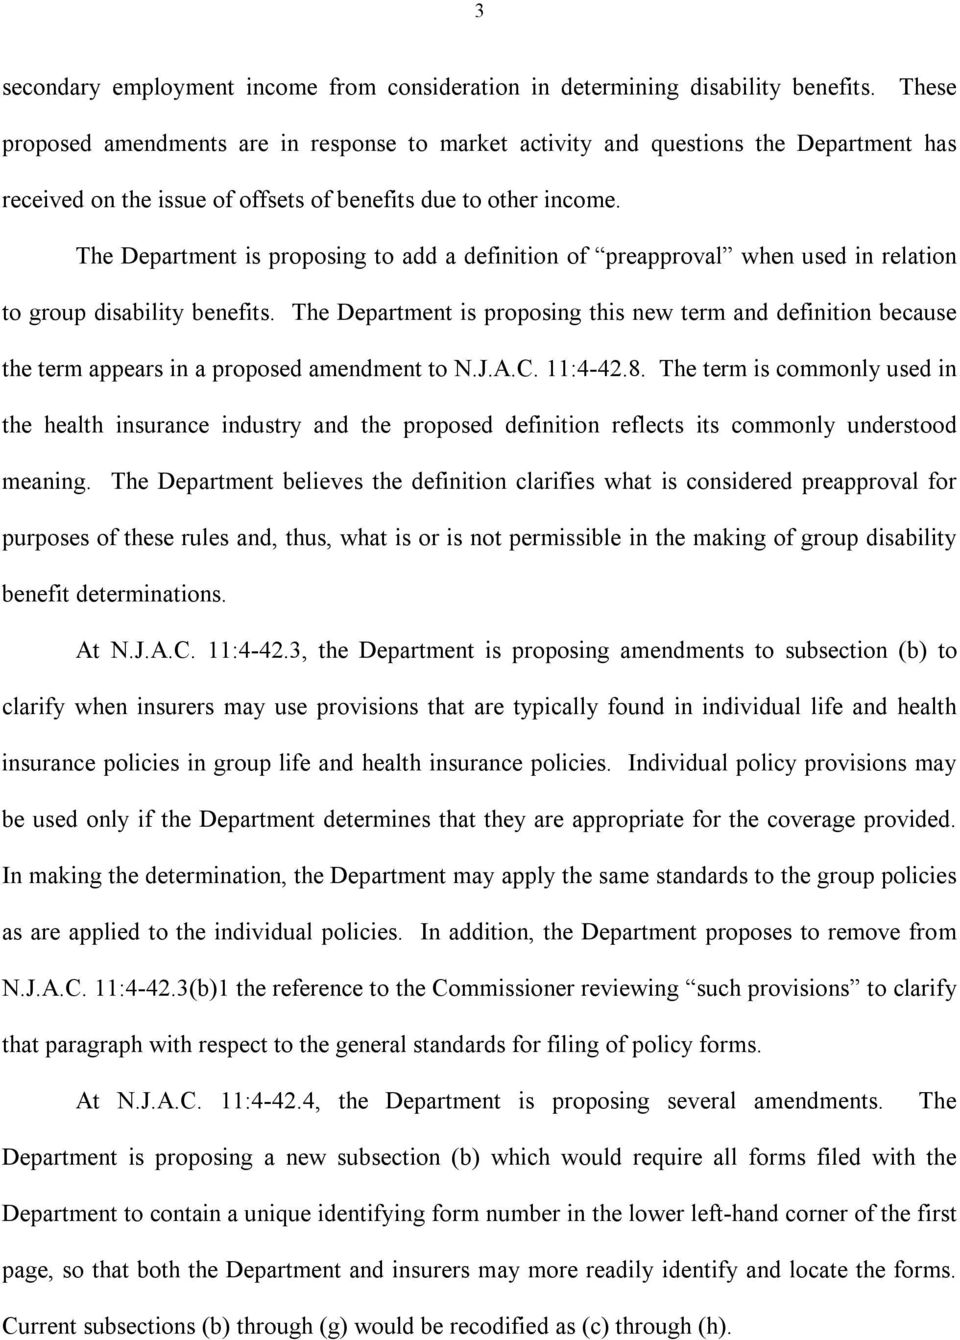 The Department is proposing to add a definition of preapproval when used in relation to group disability benefits.